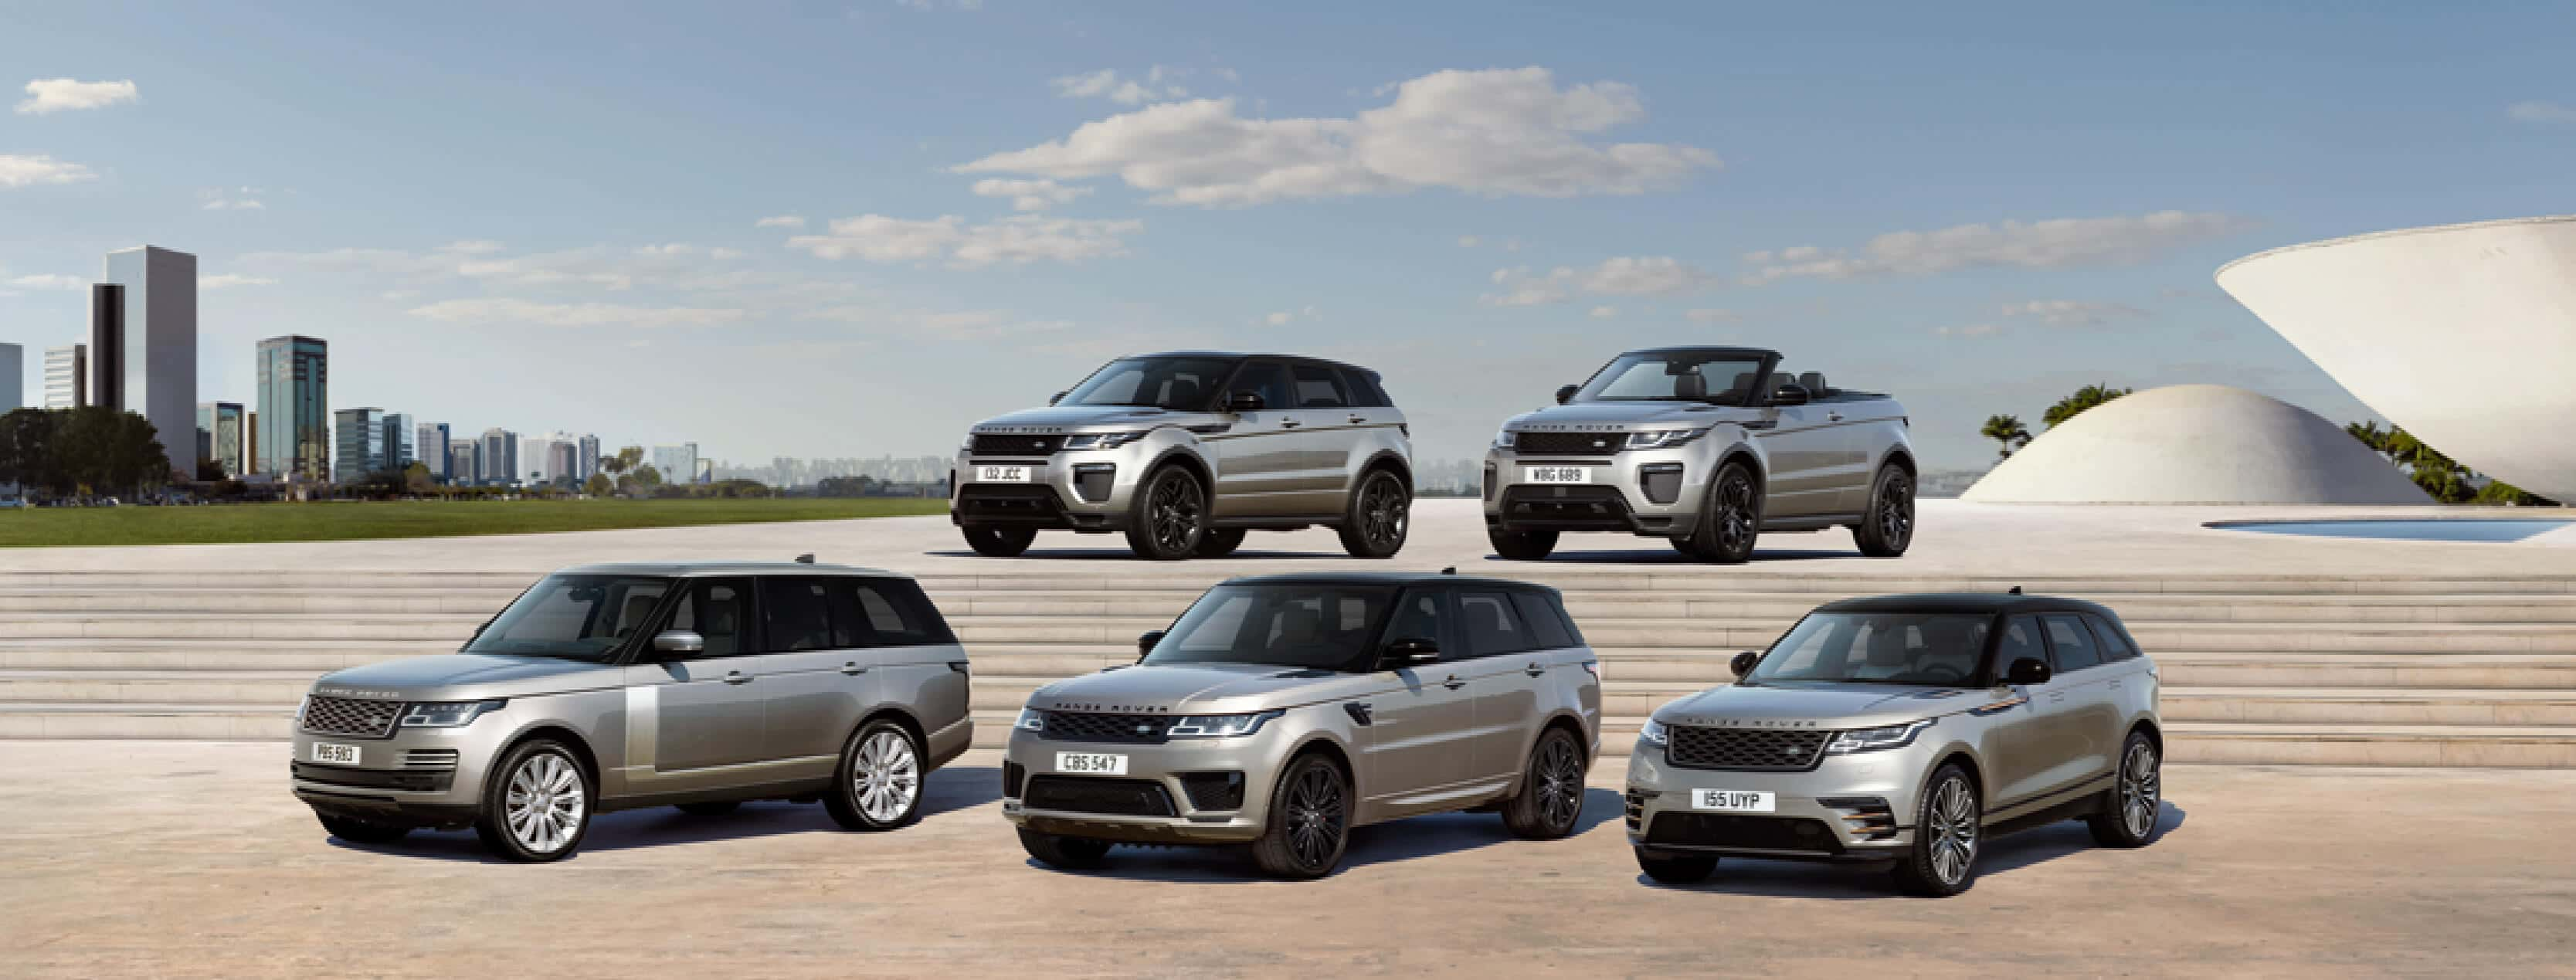 Farnell Land Rover New Car May Event | Farnell Land Rover